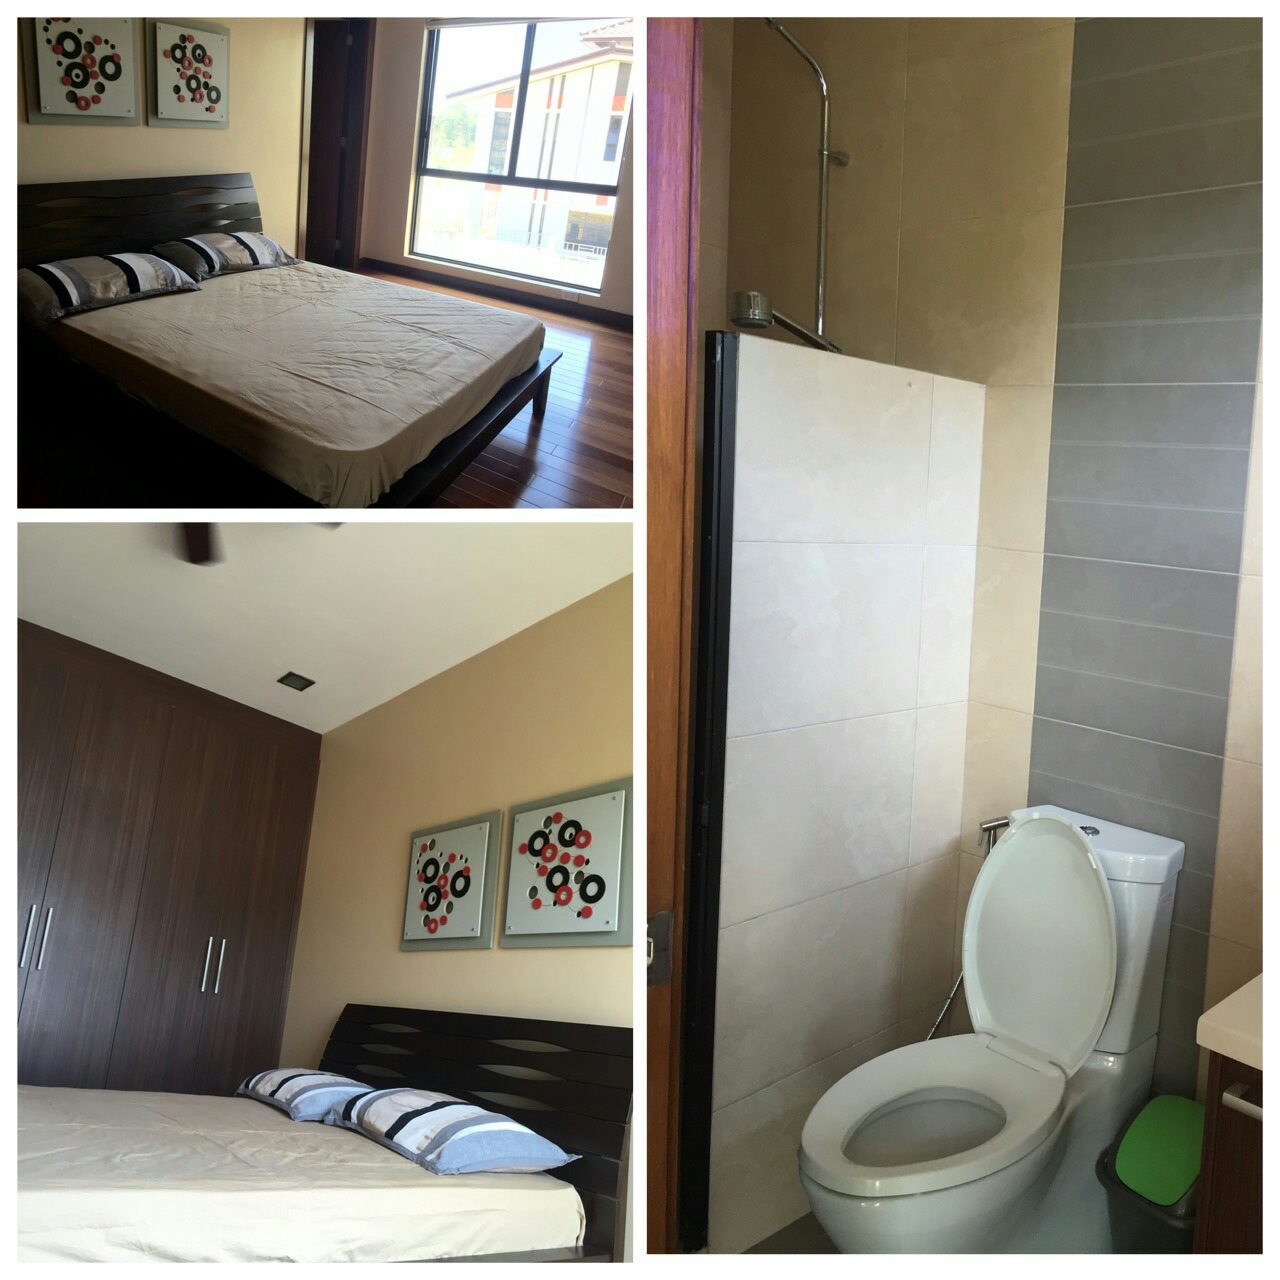 5 Bedroom For Rent: House For Rent In Cebu Talamban